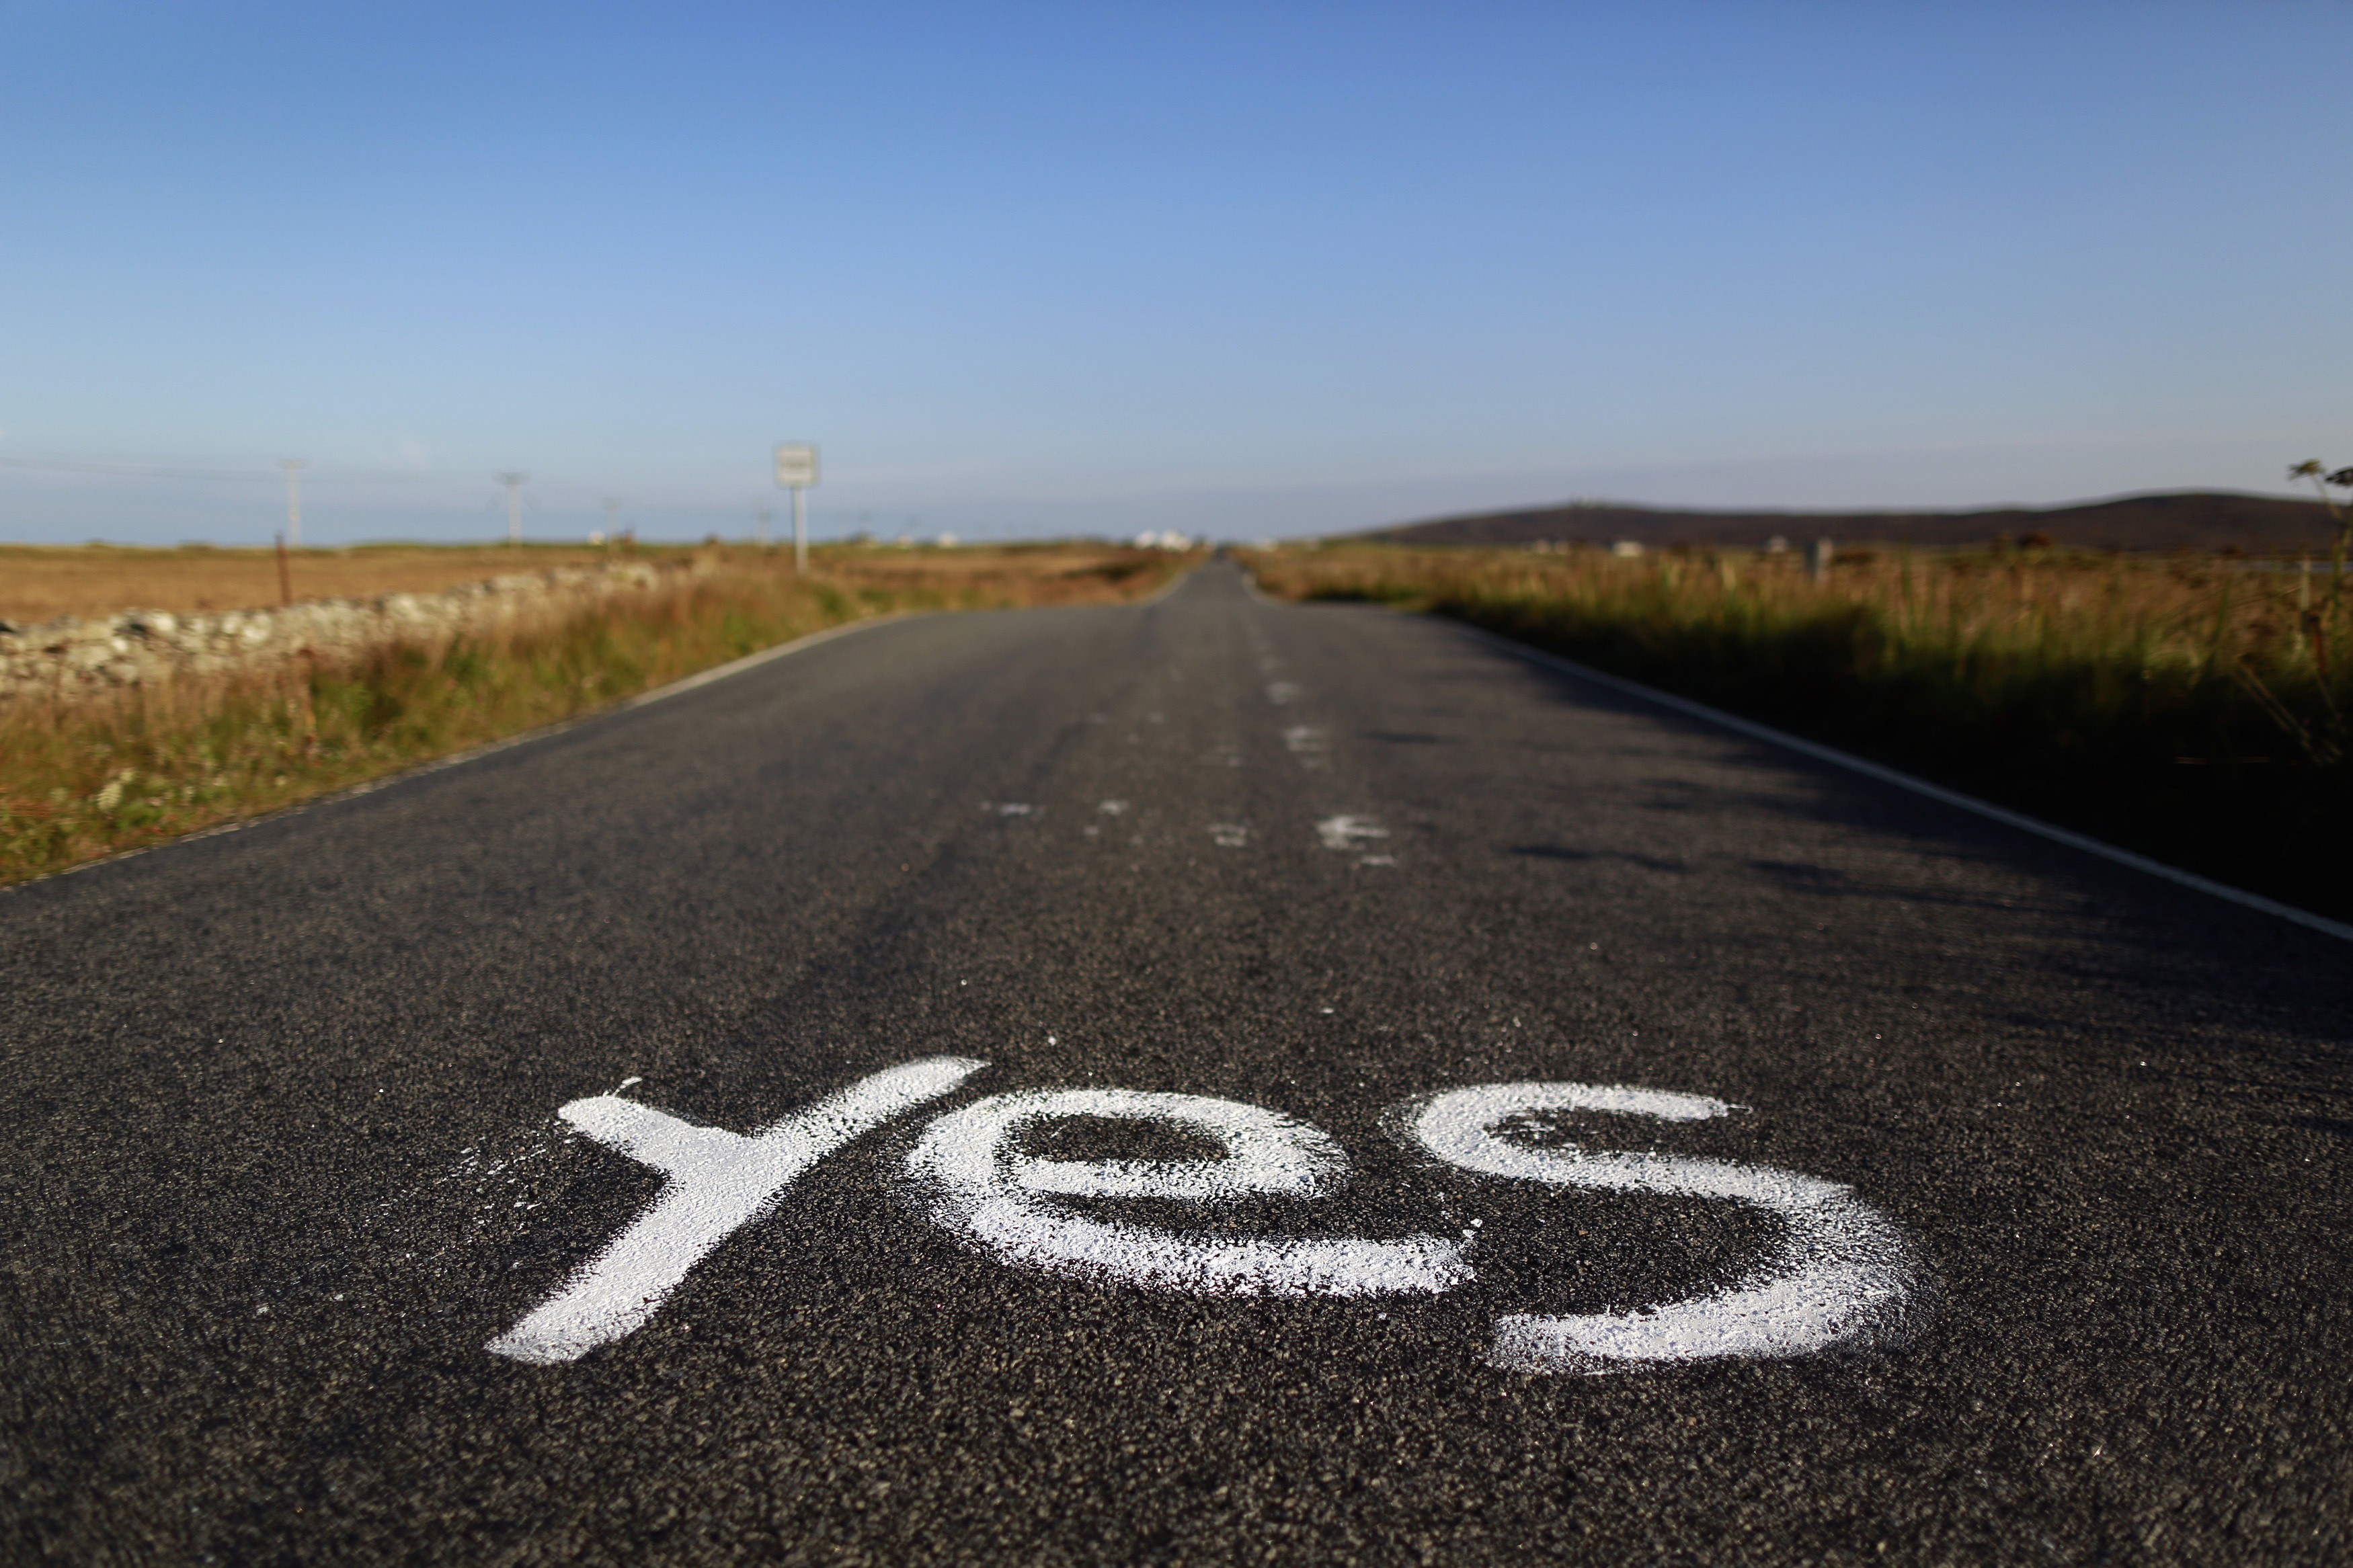 Graffiti supporting the  Yes  campaign is painted on a road in North Uist in the Outer Hebrides Sept. 17, 2014.